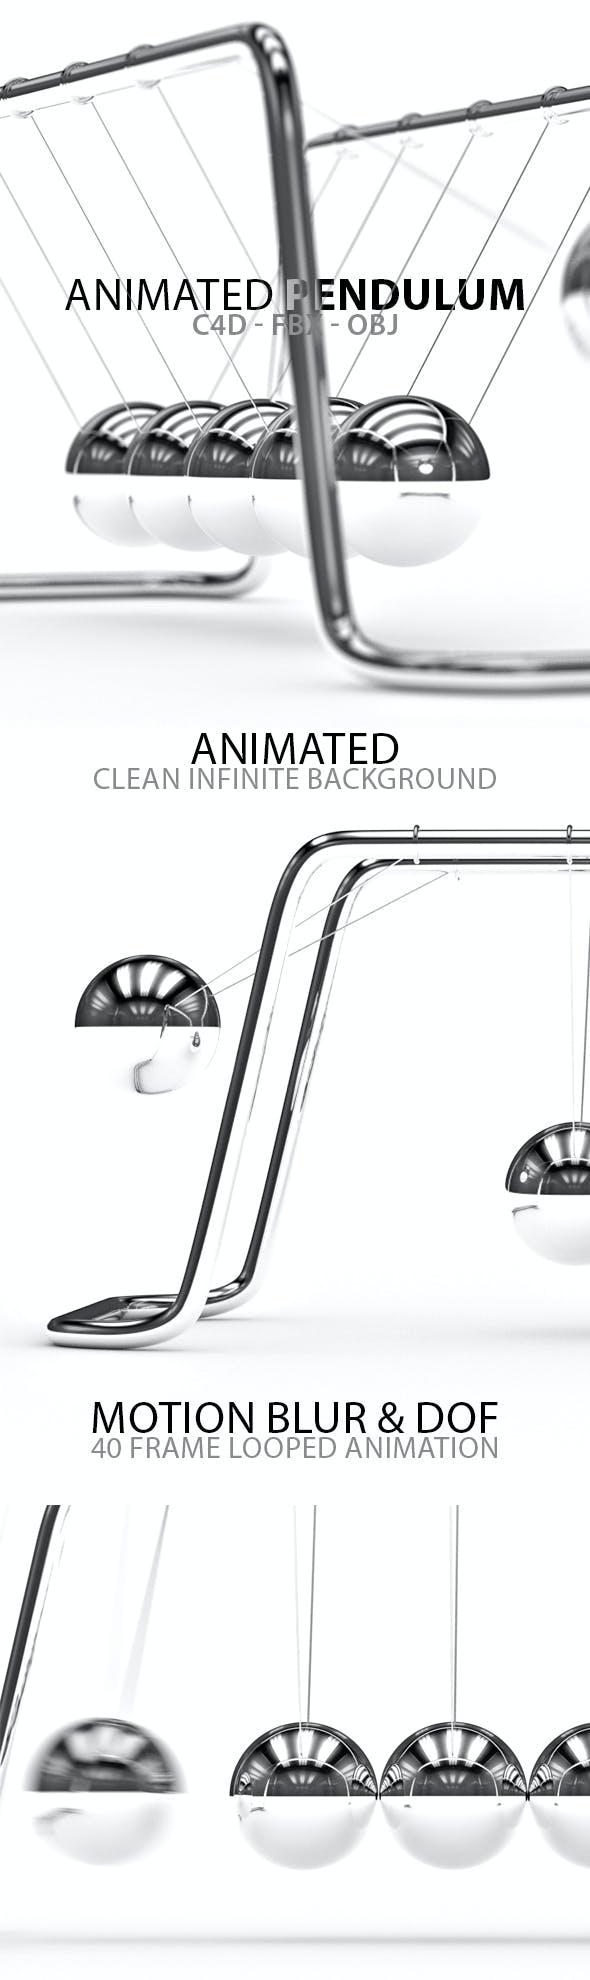 Animated Pendulum with Infinite Background - 3DOcean Item for Sale